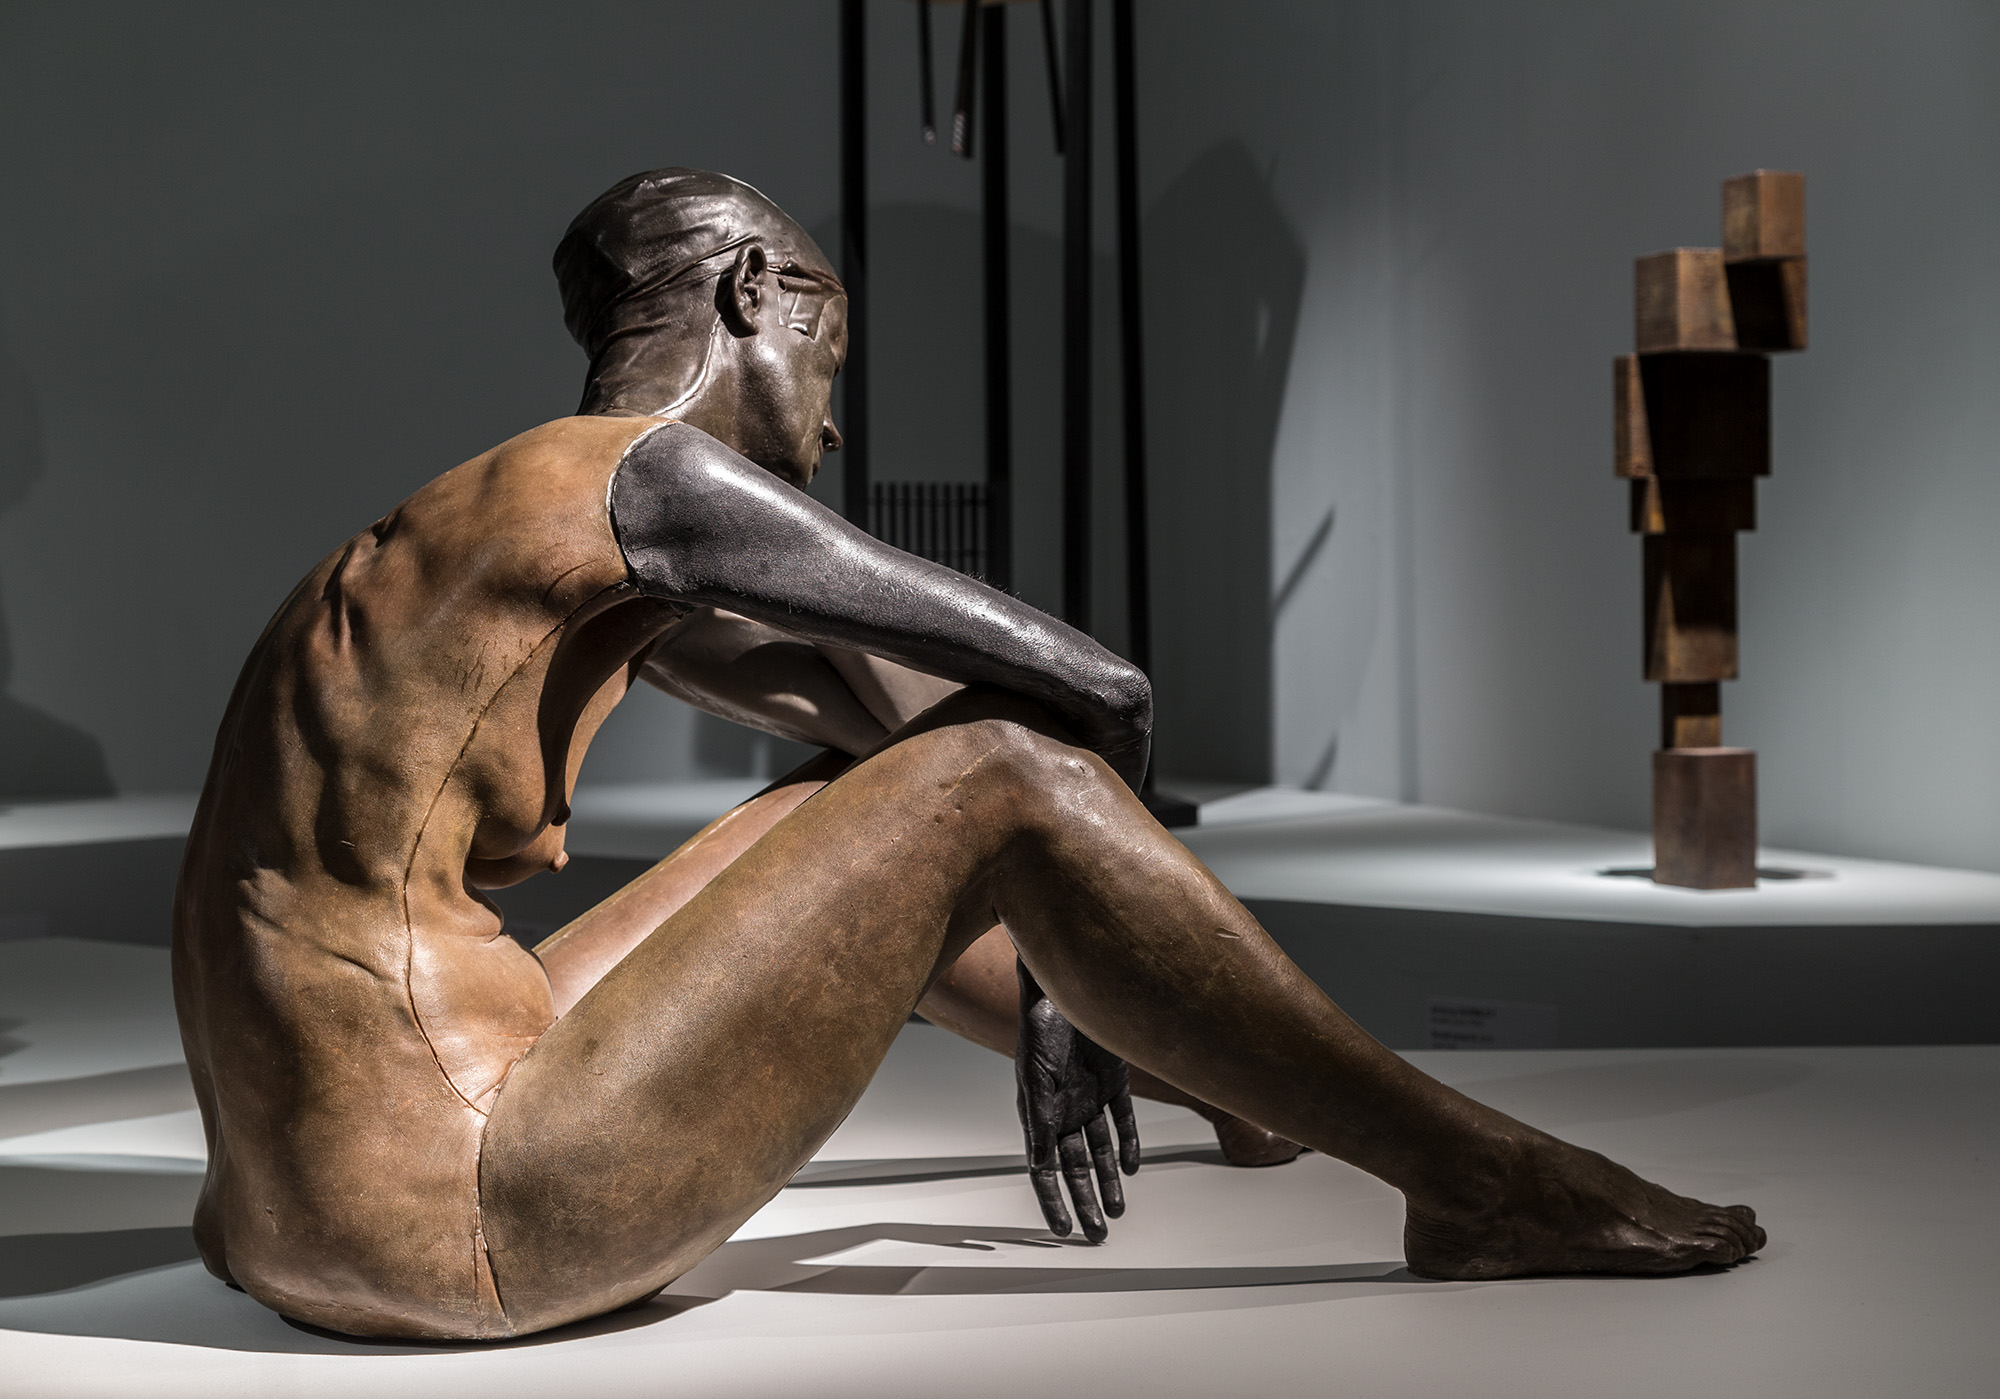 Installation view  Versus Rodin: bodies across space and time , Art Gallery of South Australia, 2017, featuring Ugo Rondinone in  The body across space and time.